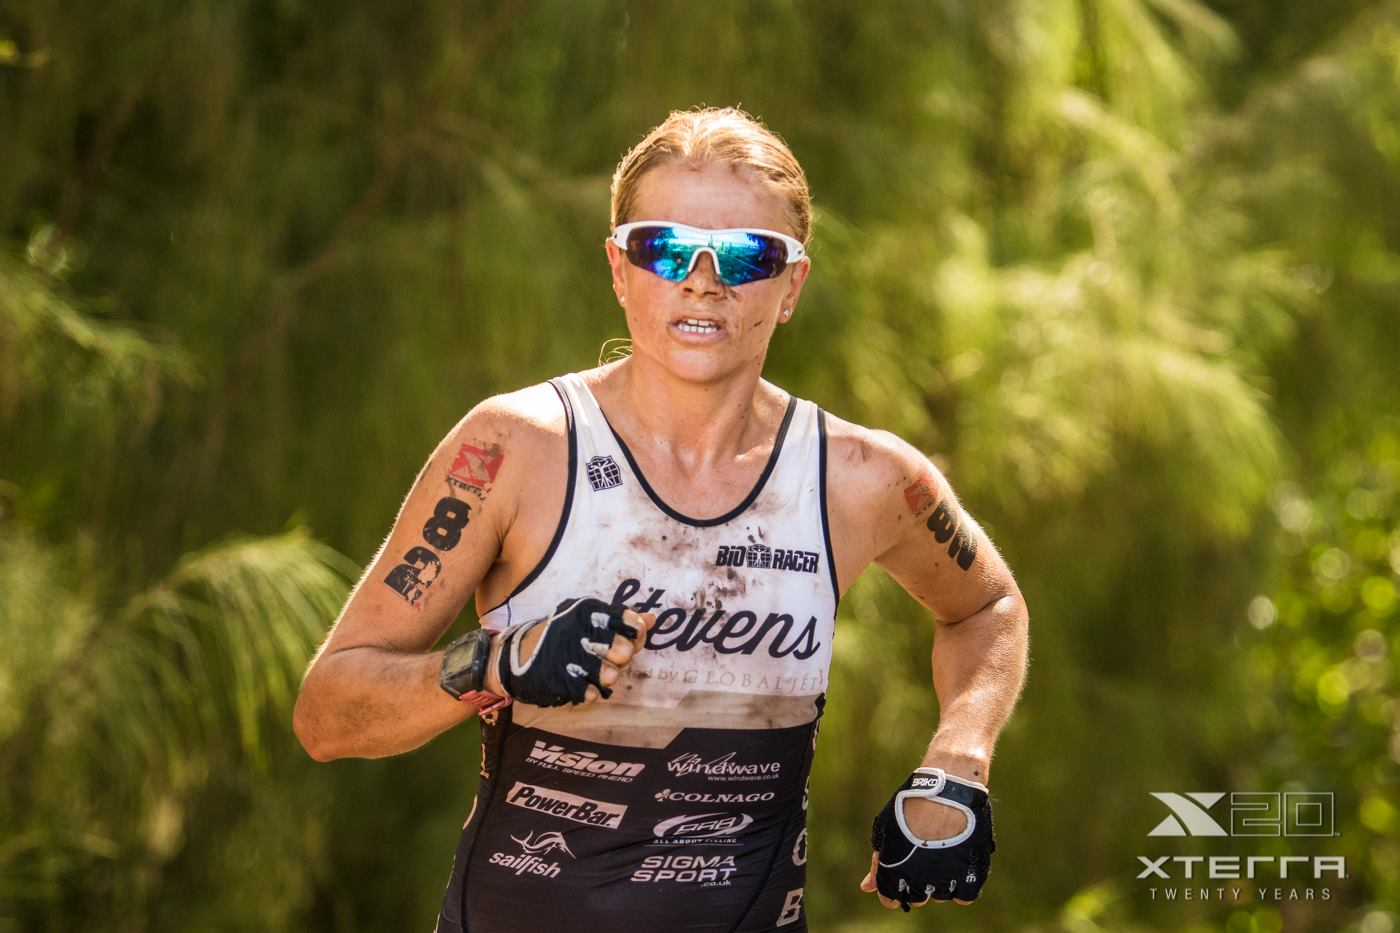 XTERRA_WORLD_CHAMPIONSHIP_2015_00070